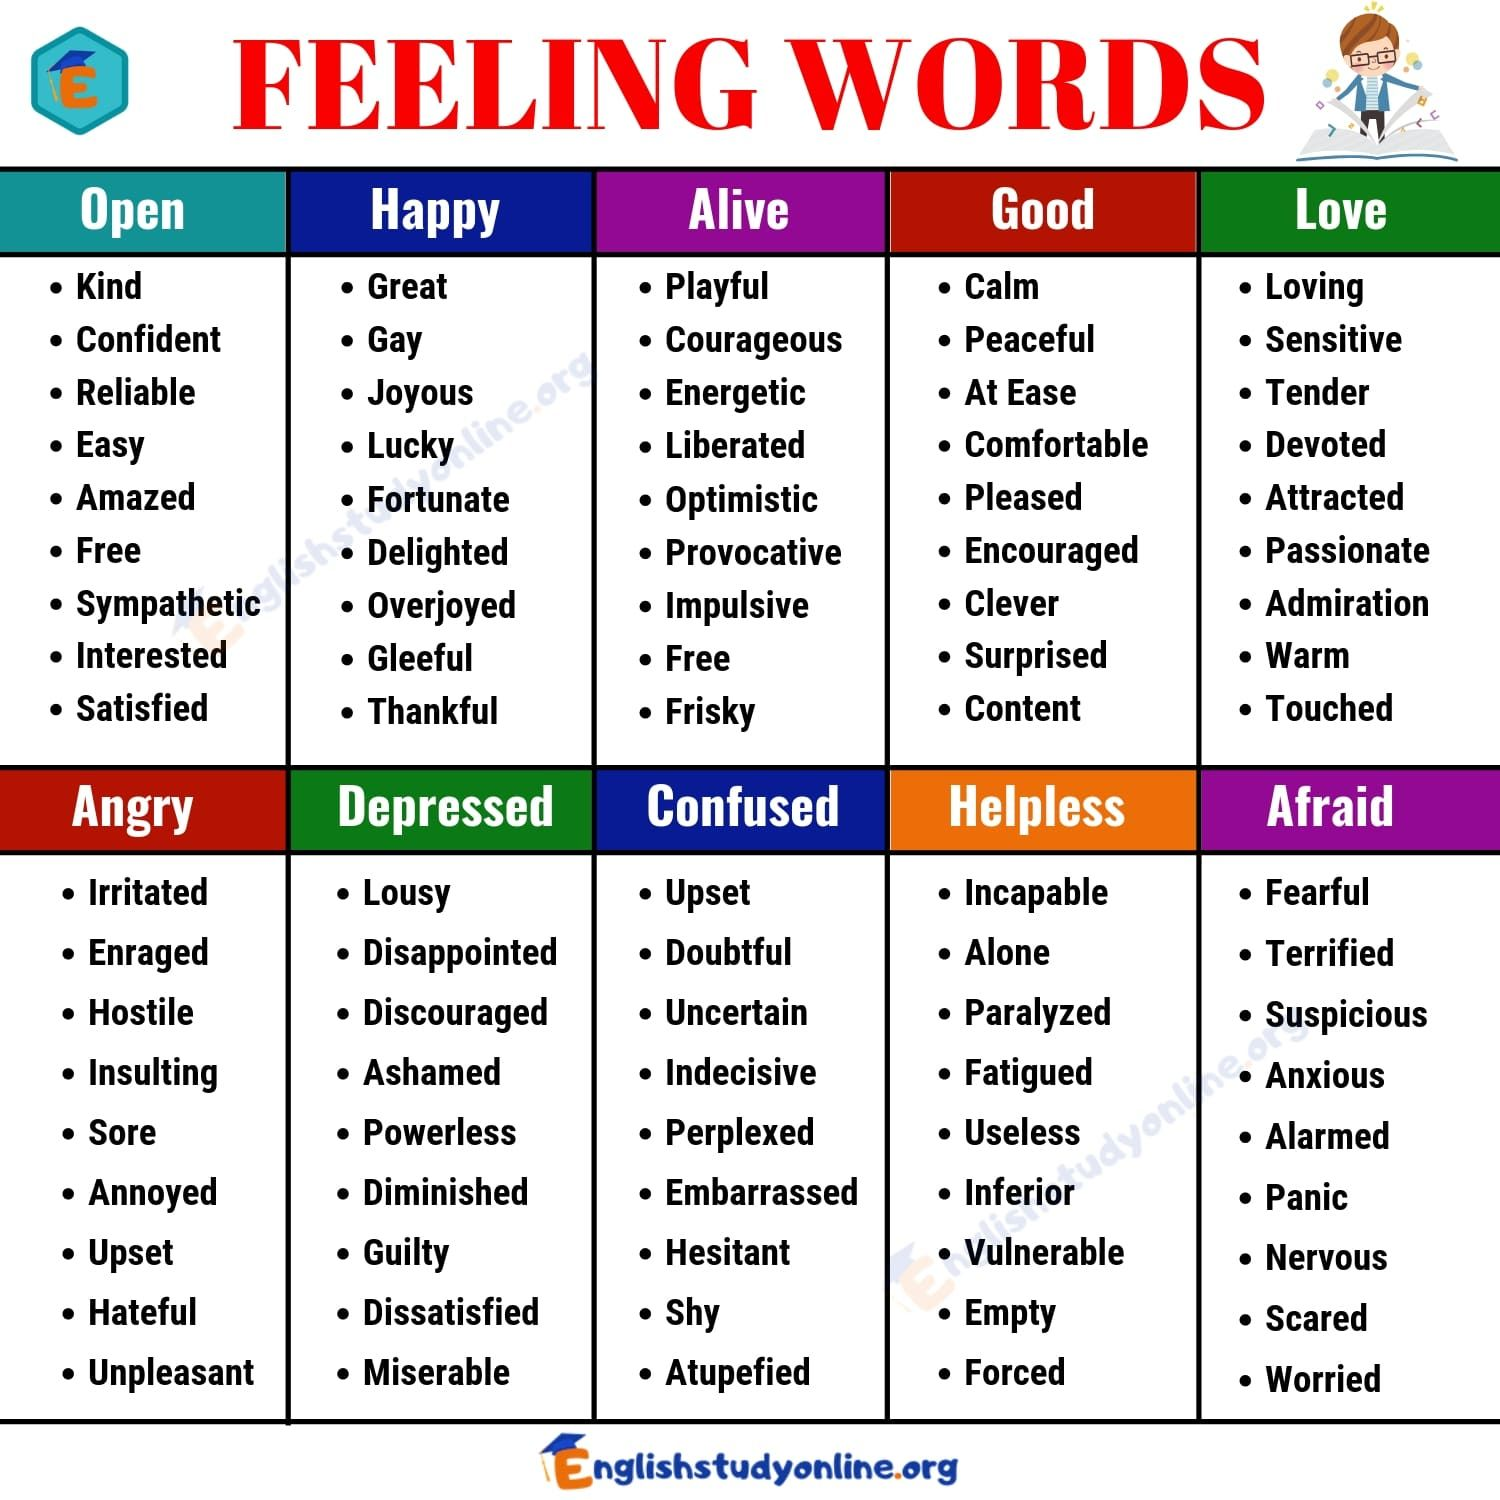 Useful List Of 100 Feeling Words With Images